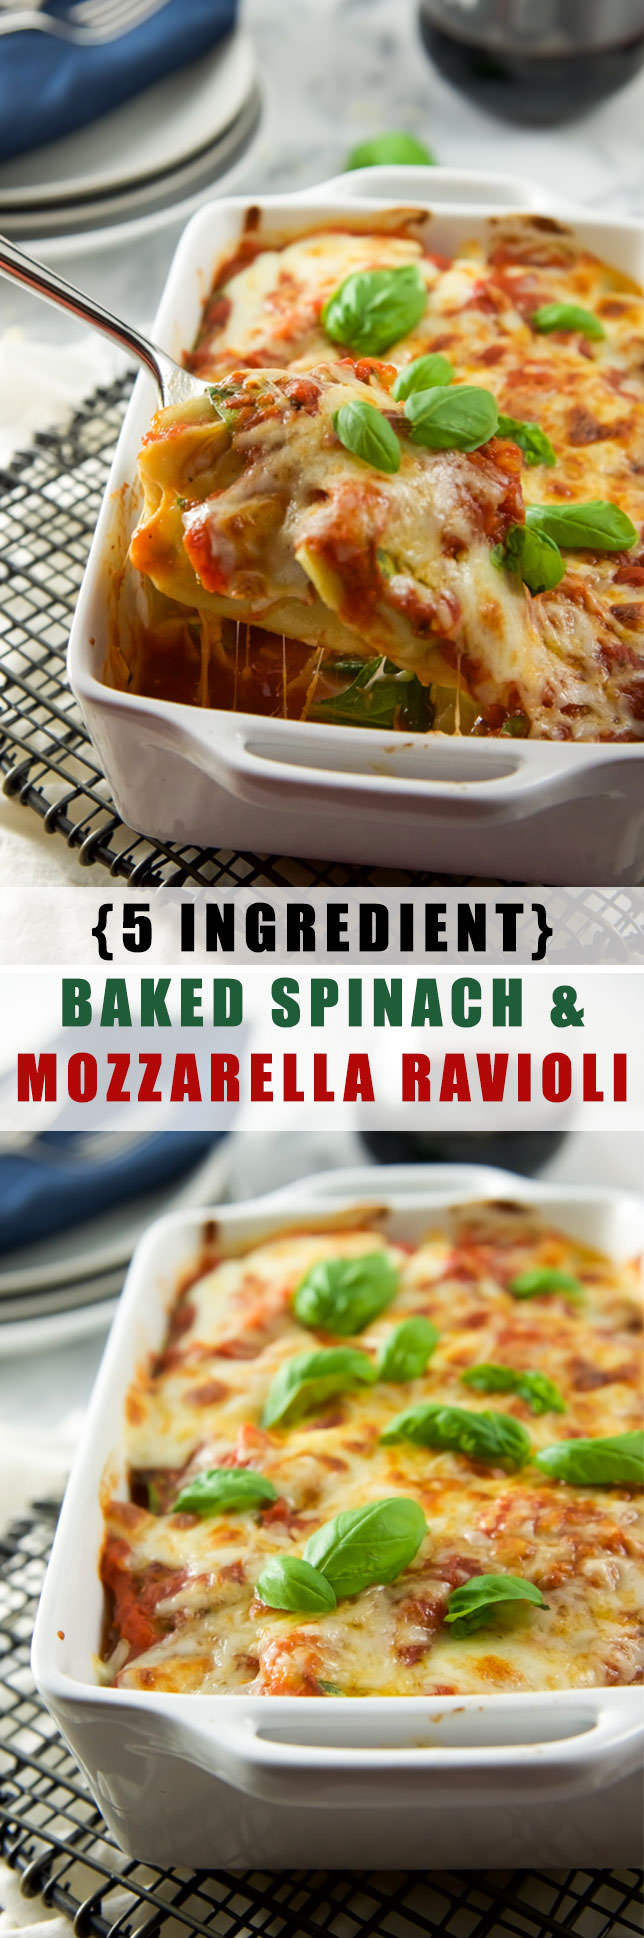 {5 Ingredient} Baked Spinach and Mozzarella Ravioli Florentine is a cheesy, quick and delicious dinner that is better than carry out!